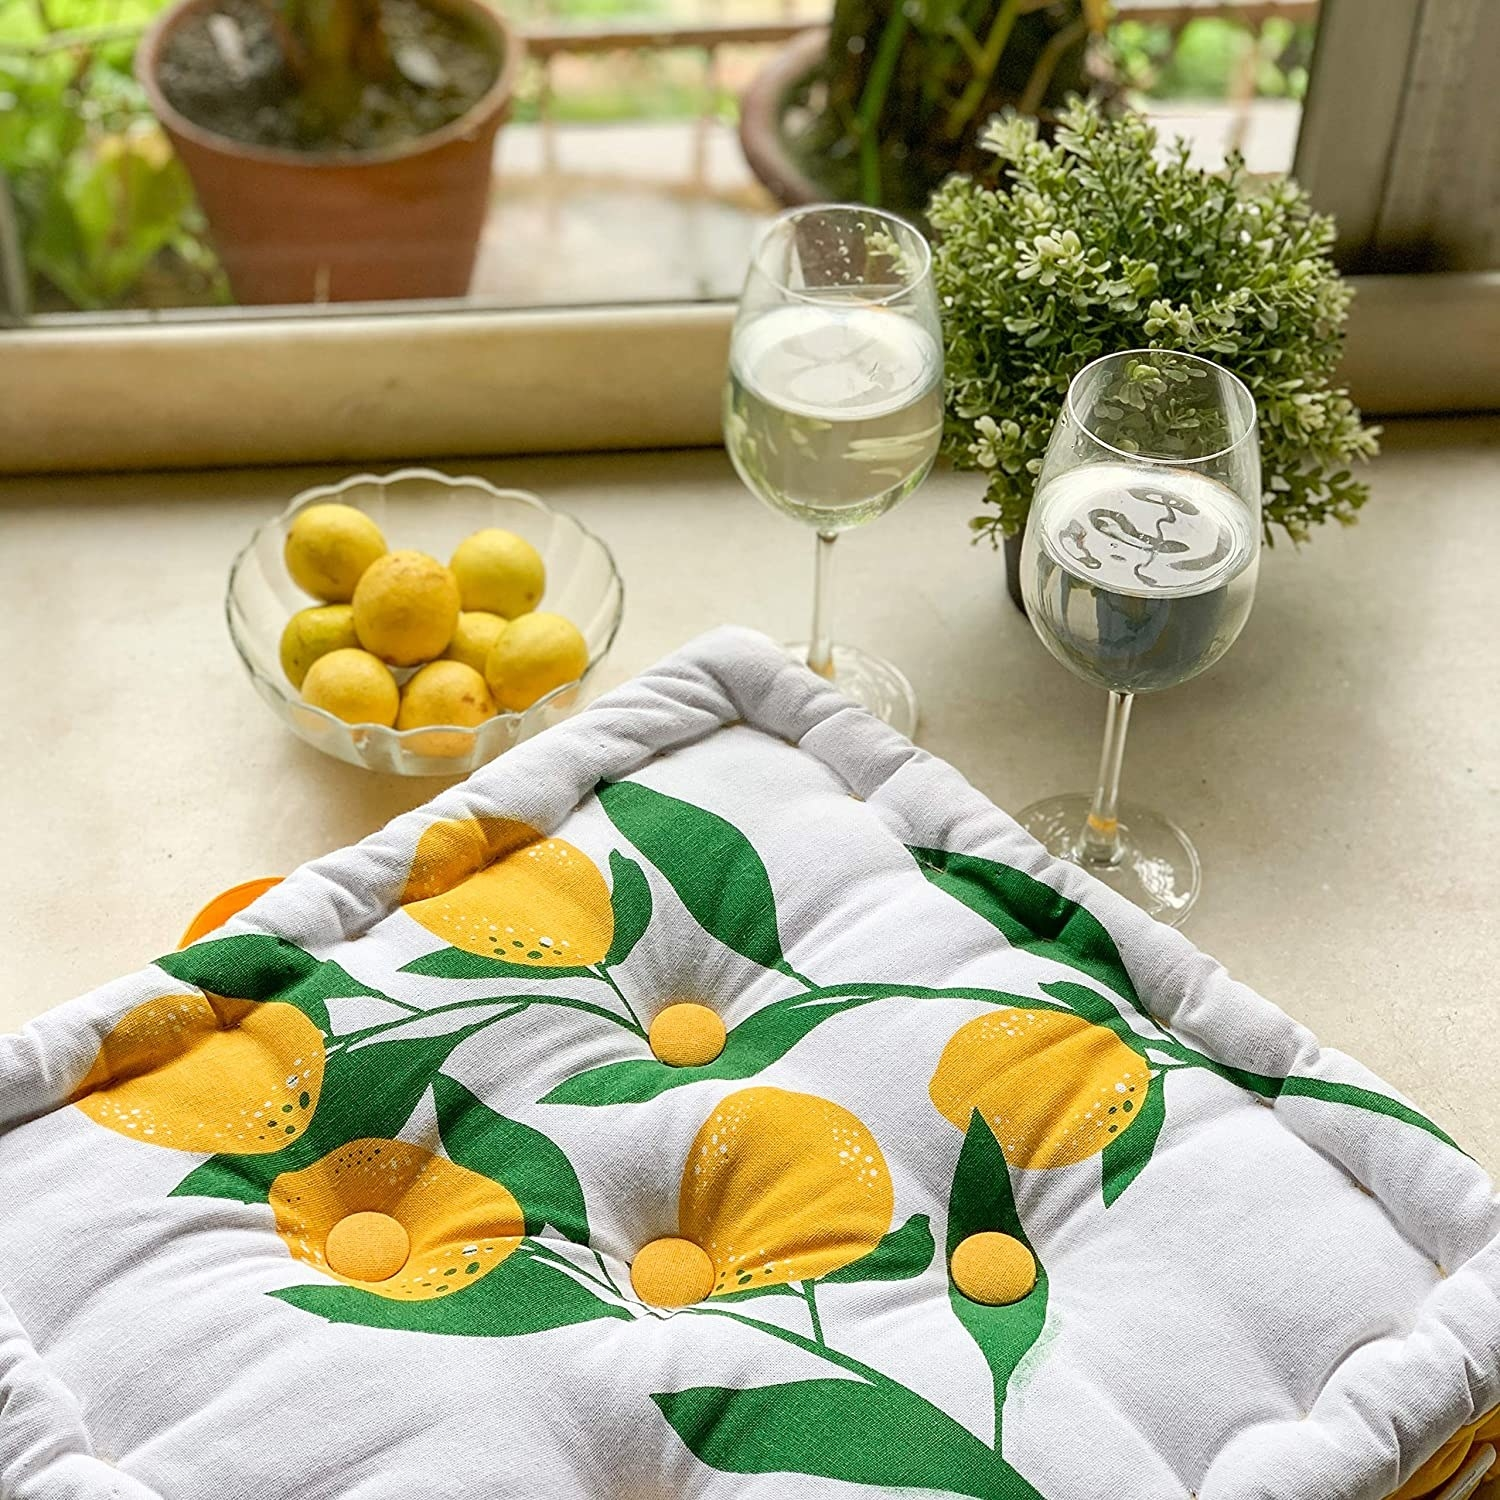 A square floor cushion with a lemons printed on it. It's kept next to a bowl of lemons and two wineglasses.